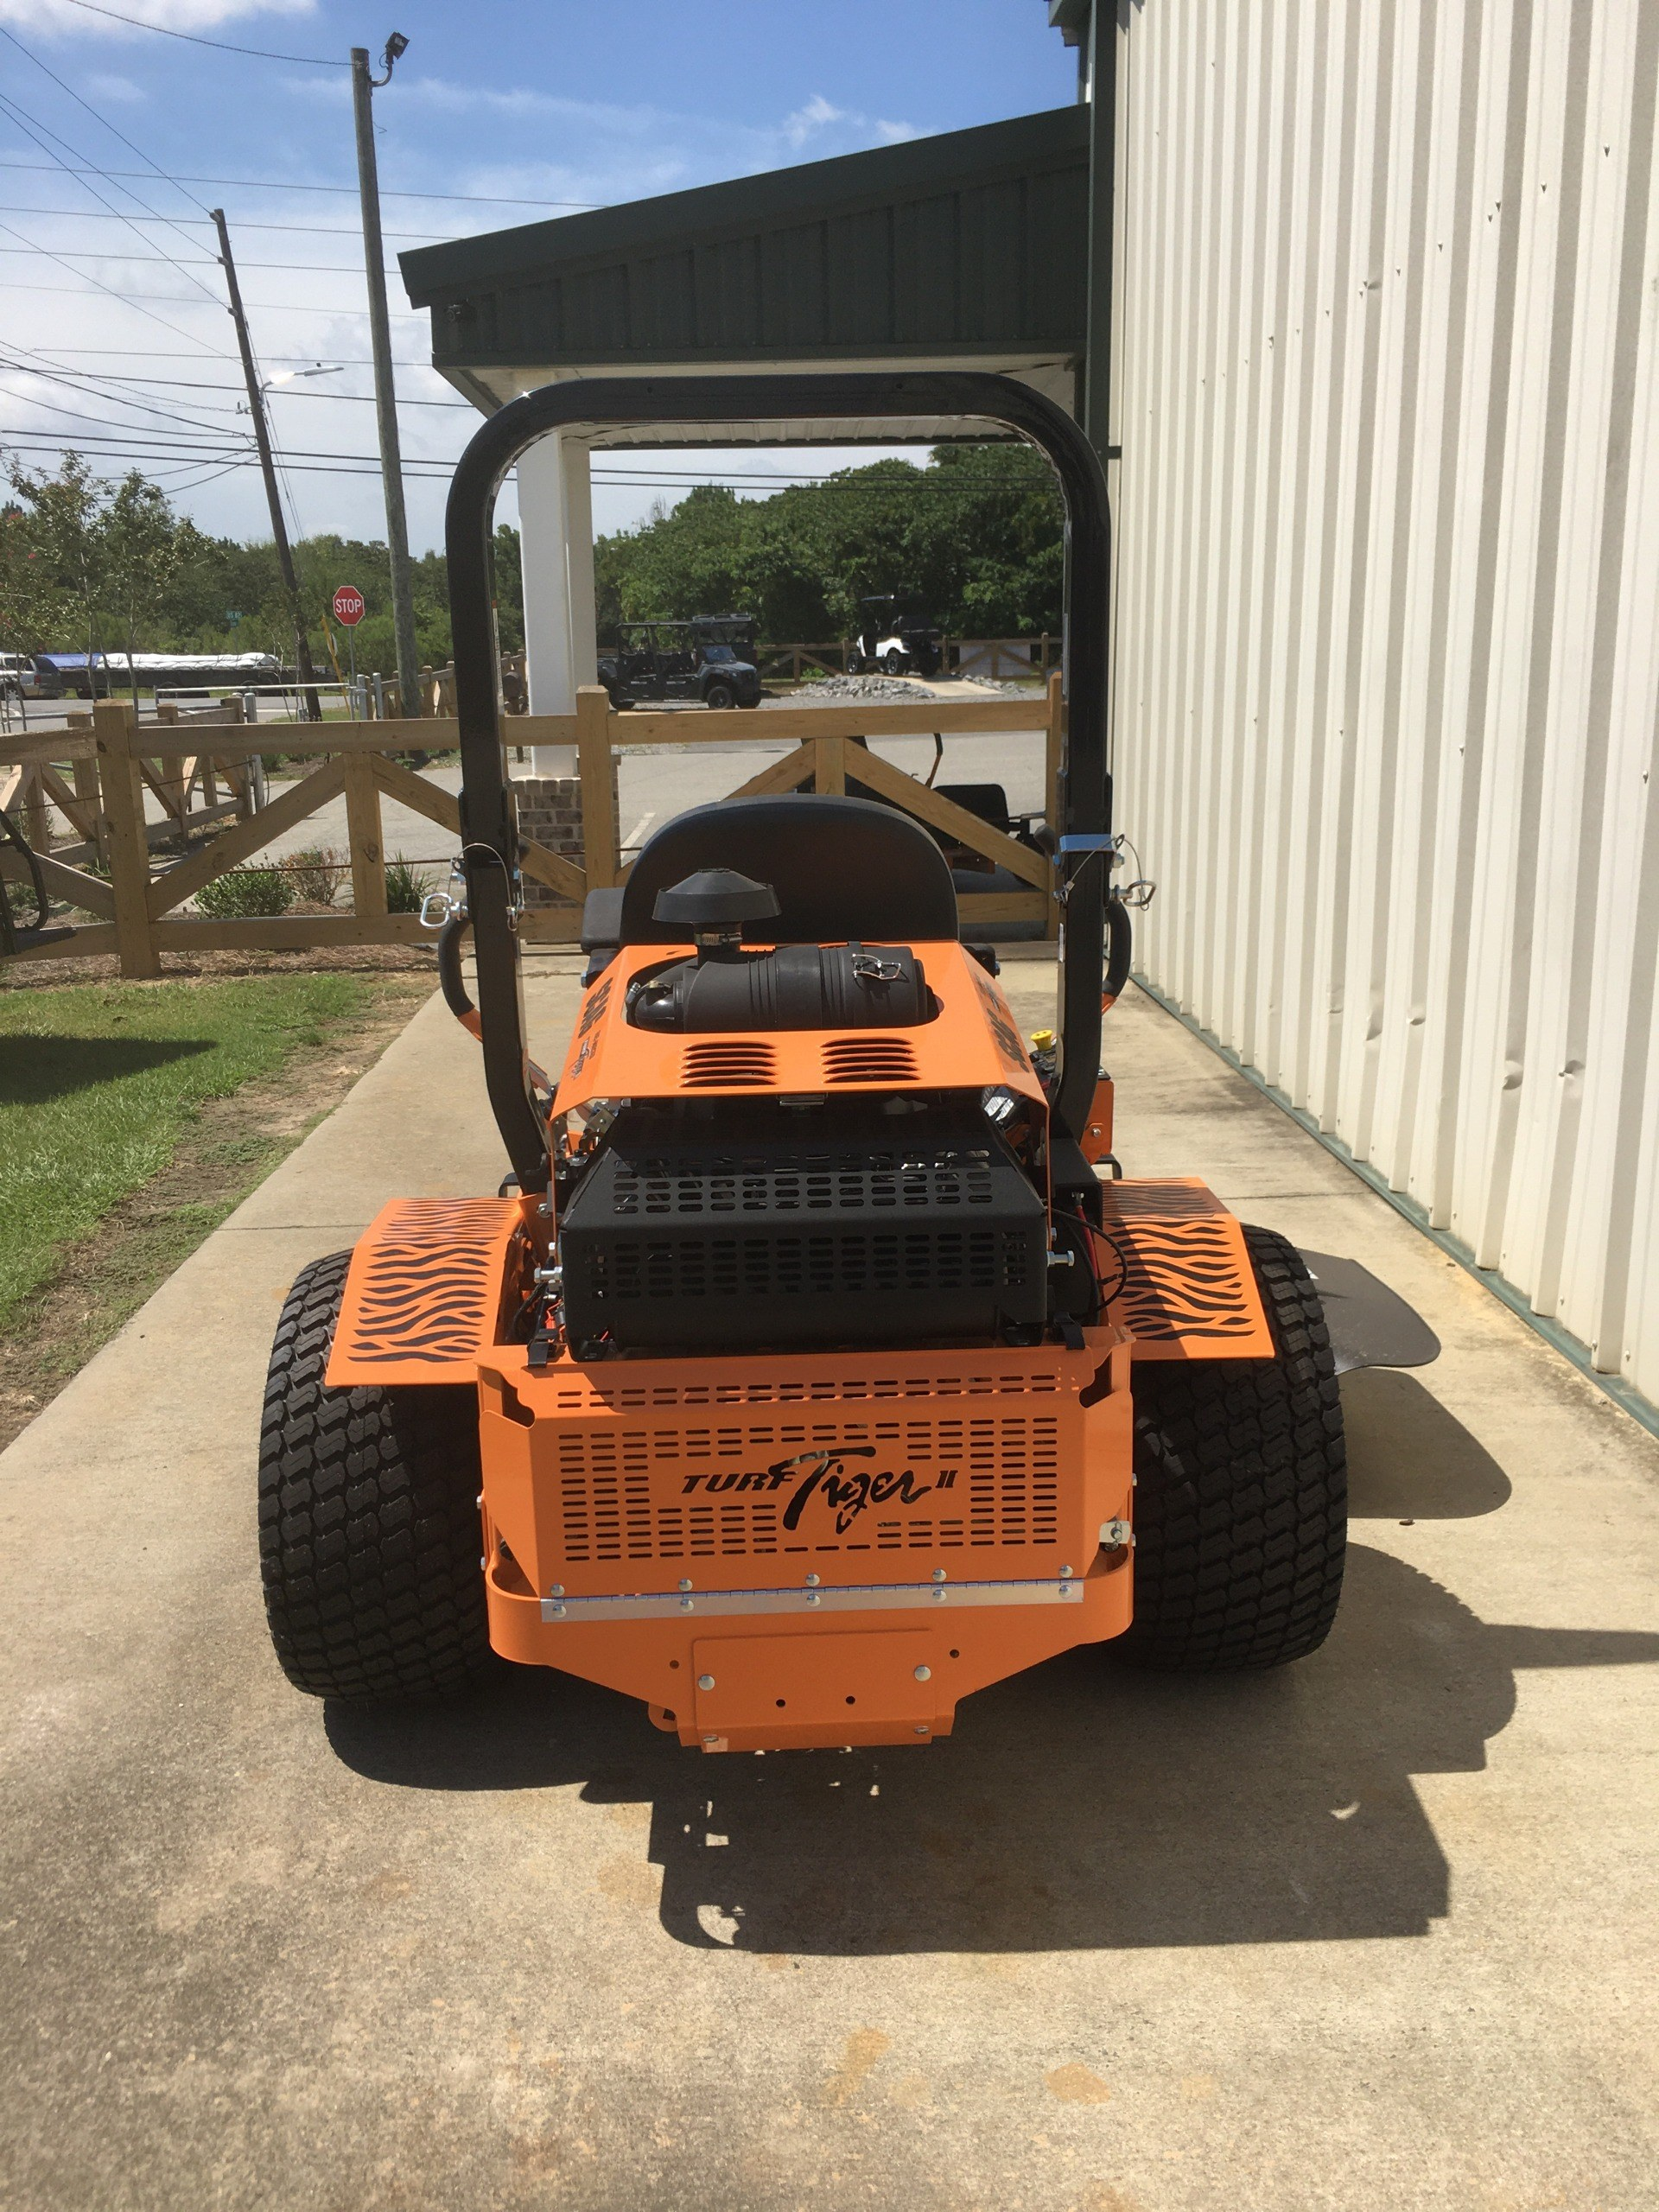 2020 SCAG Power Equipment Turf Tiger II 61 in. Briggs Vanguard EFI 37 hp in Tifton, Georgia - Photo 4